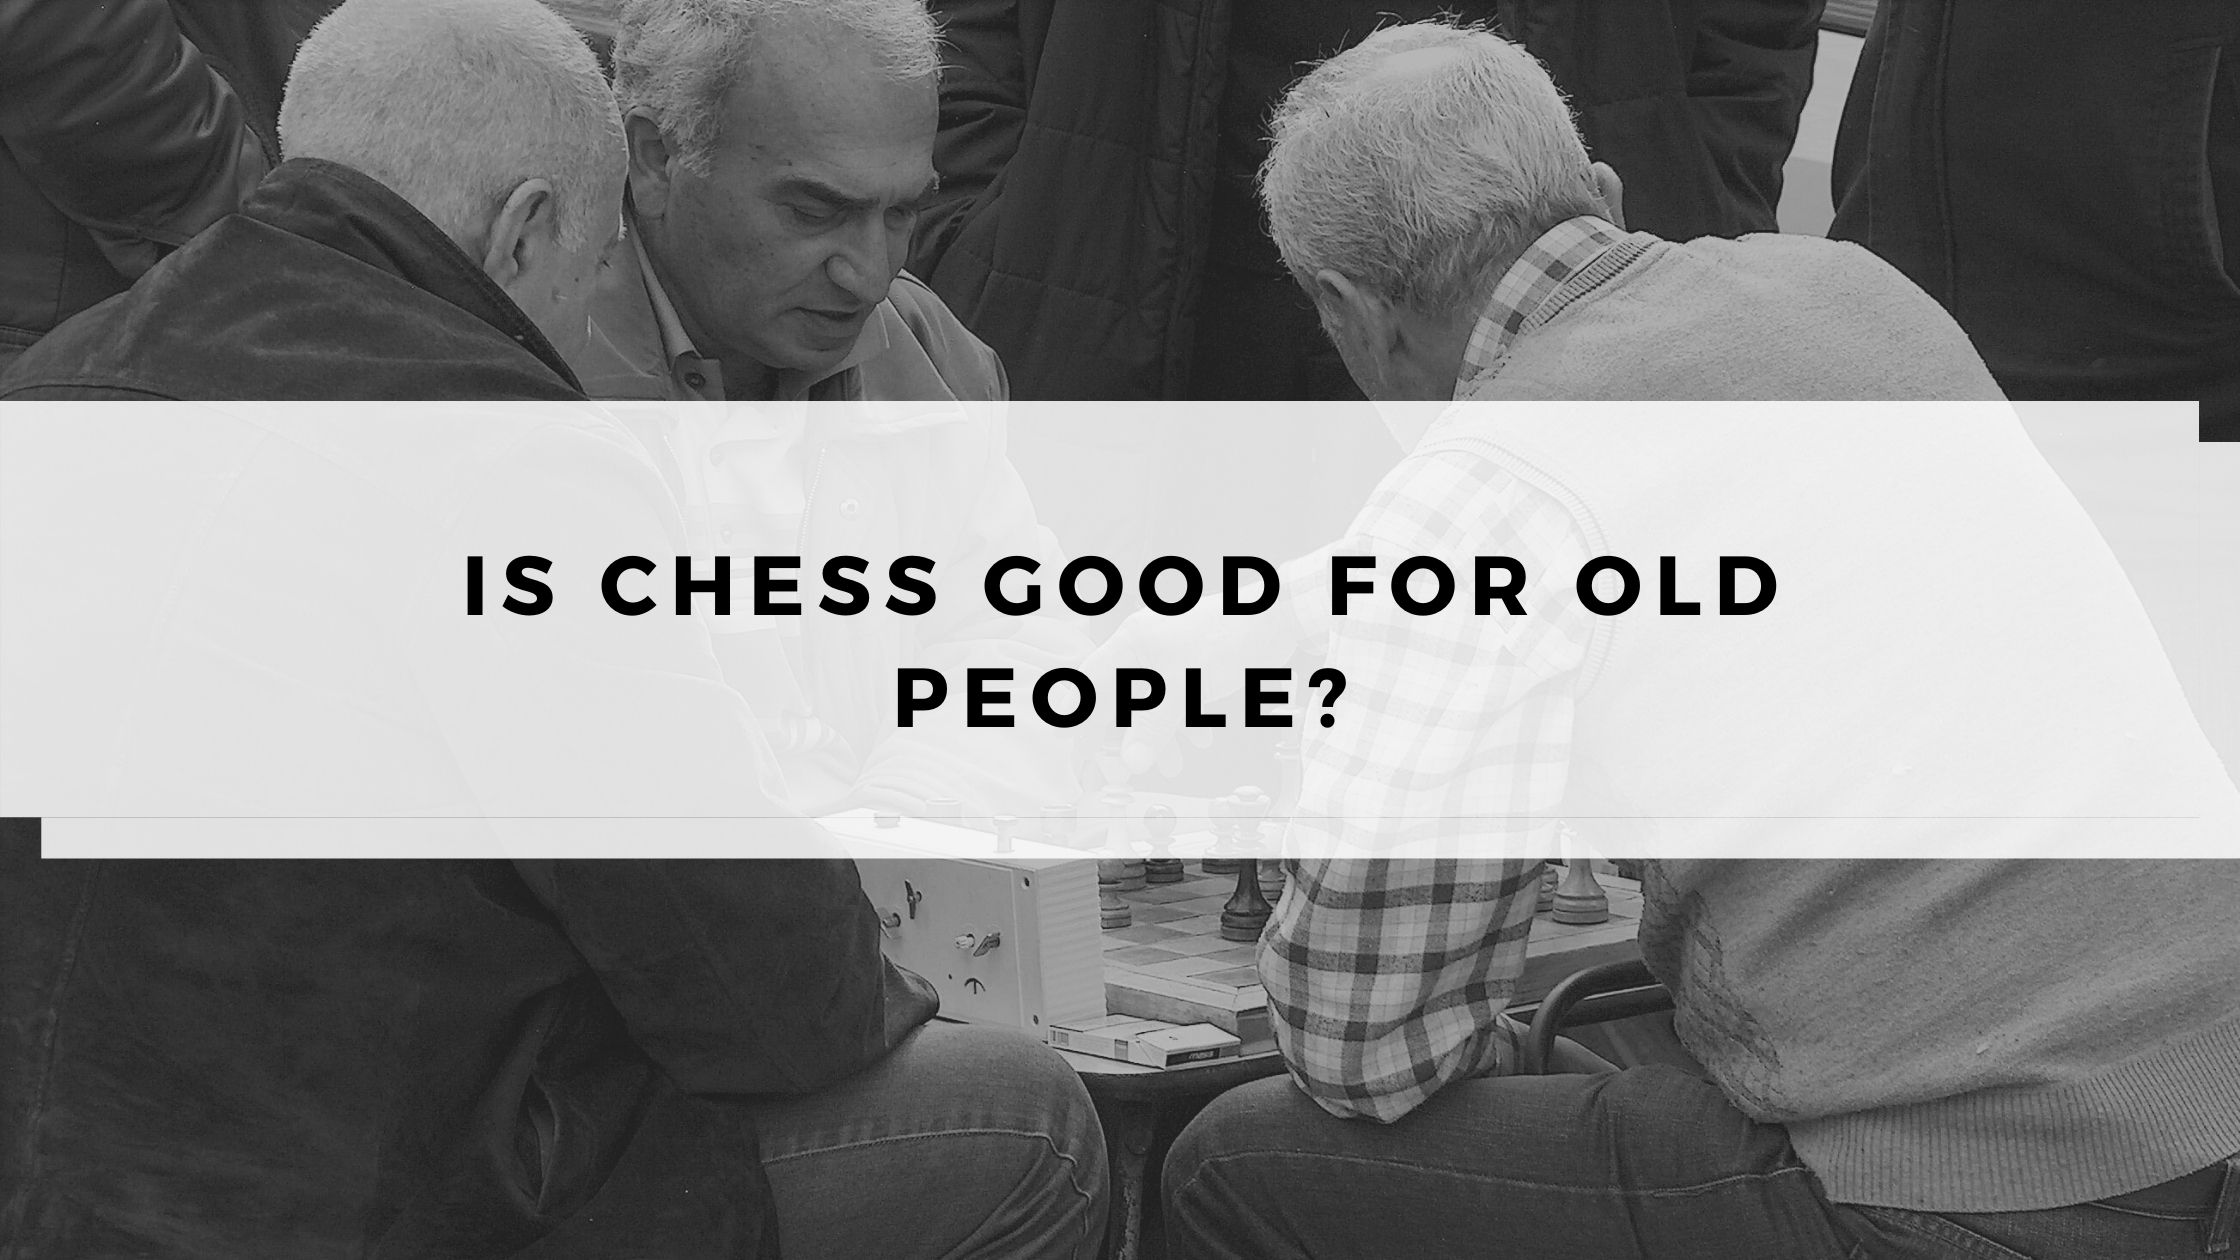 Is Chess Good for Old People?